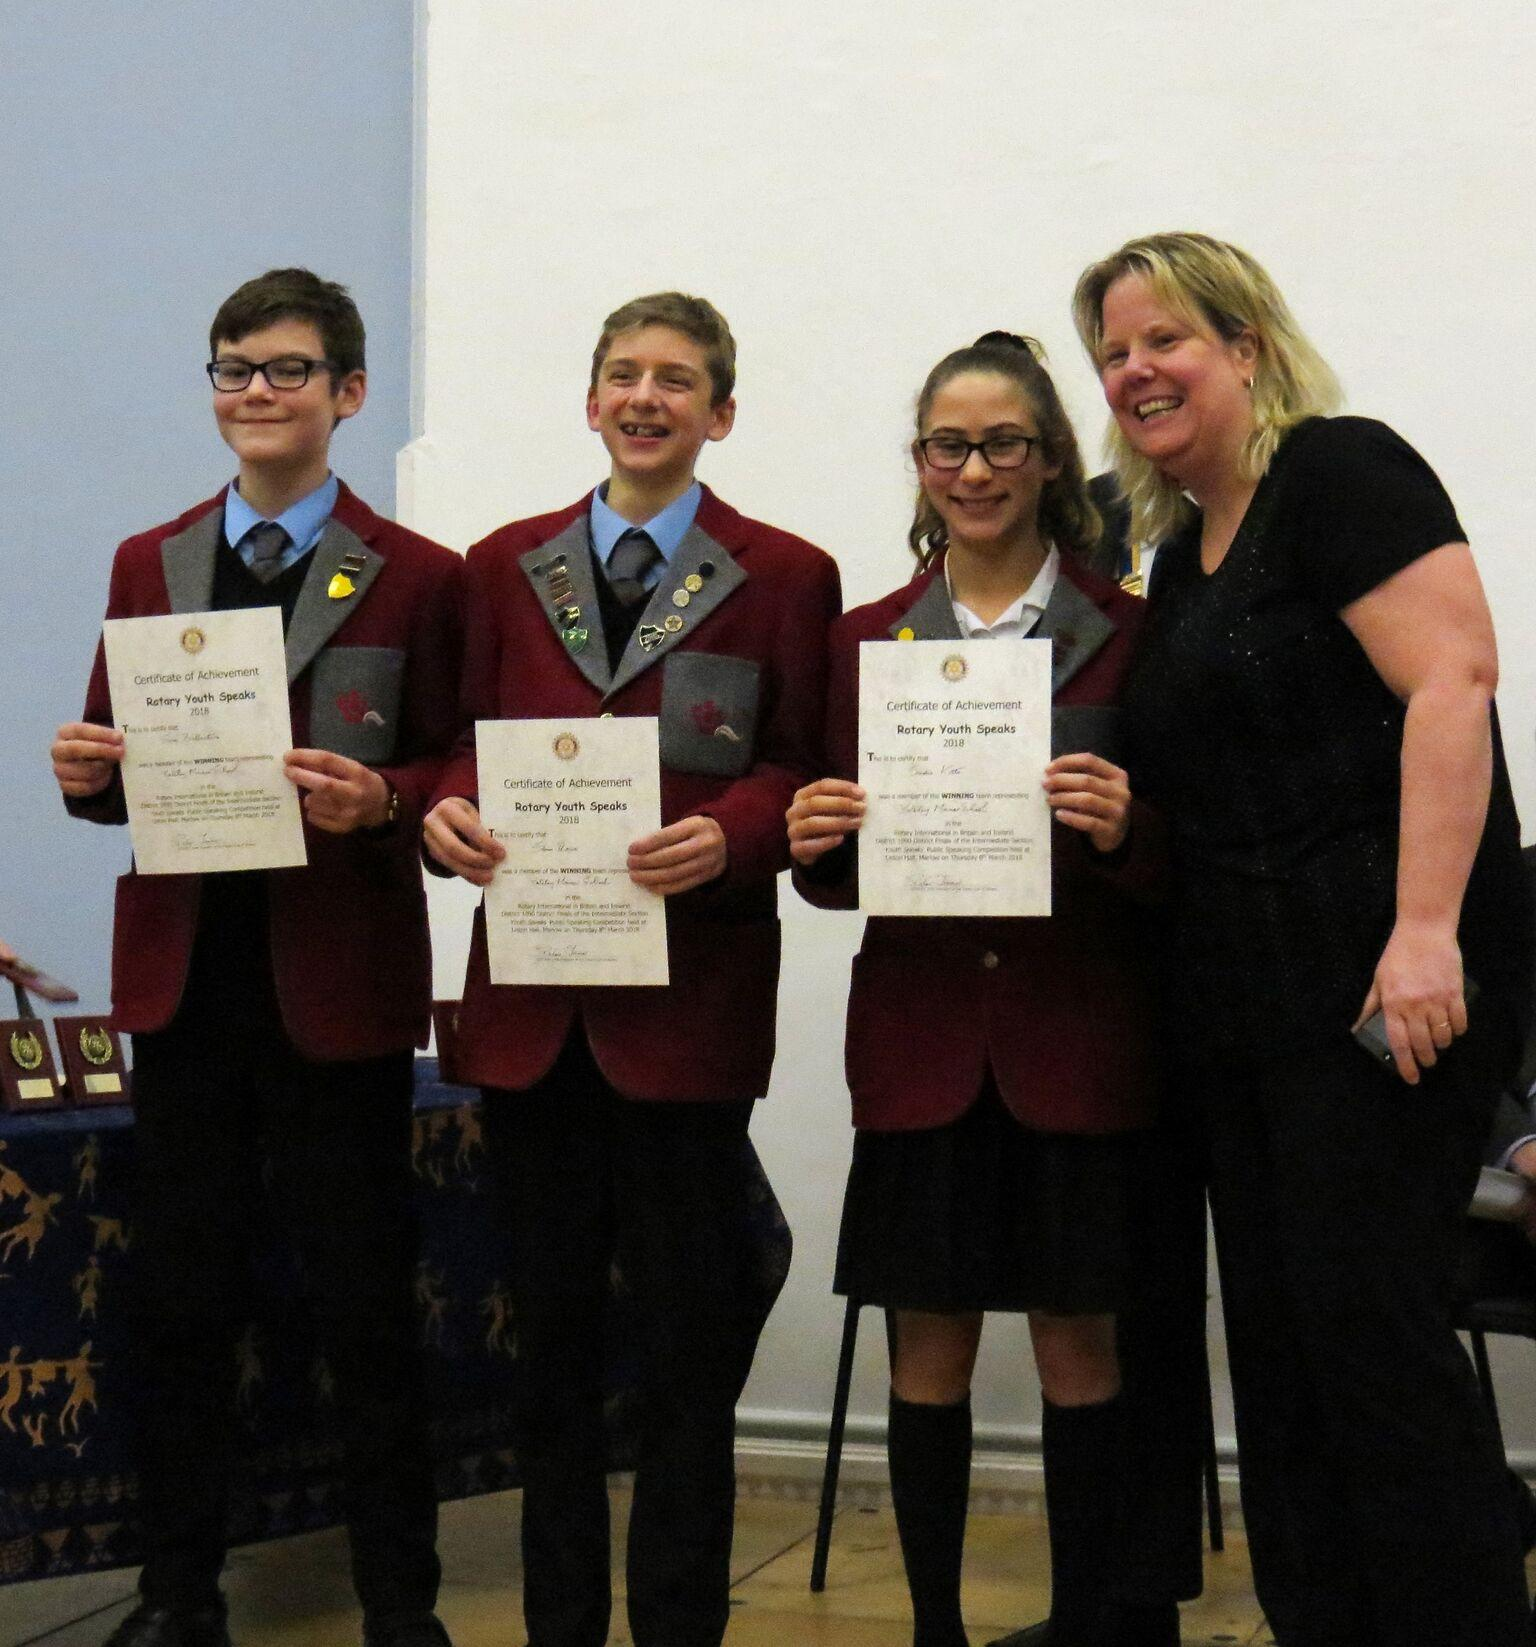 rotary-club-of-wokingham-youth-speaks-2.jpg